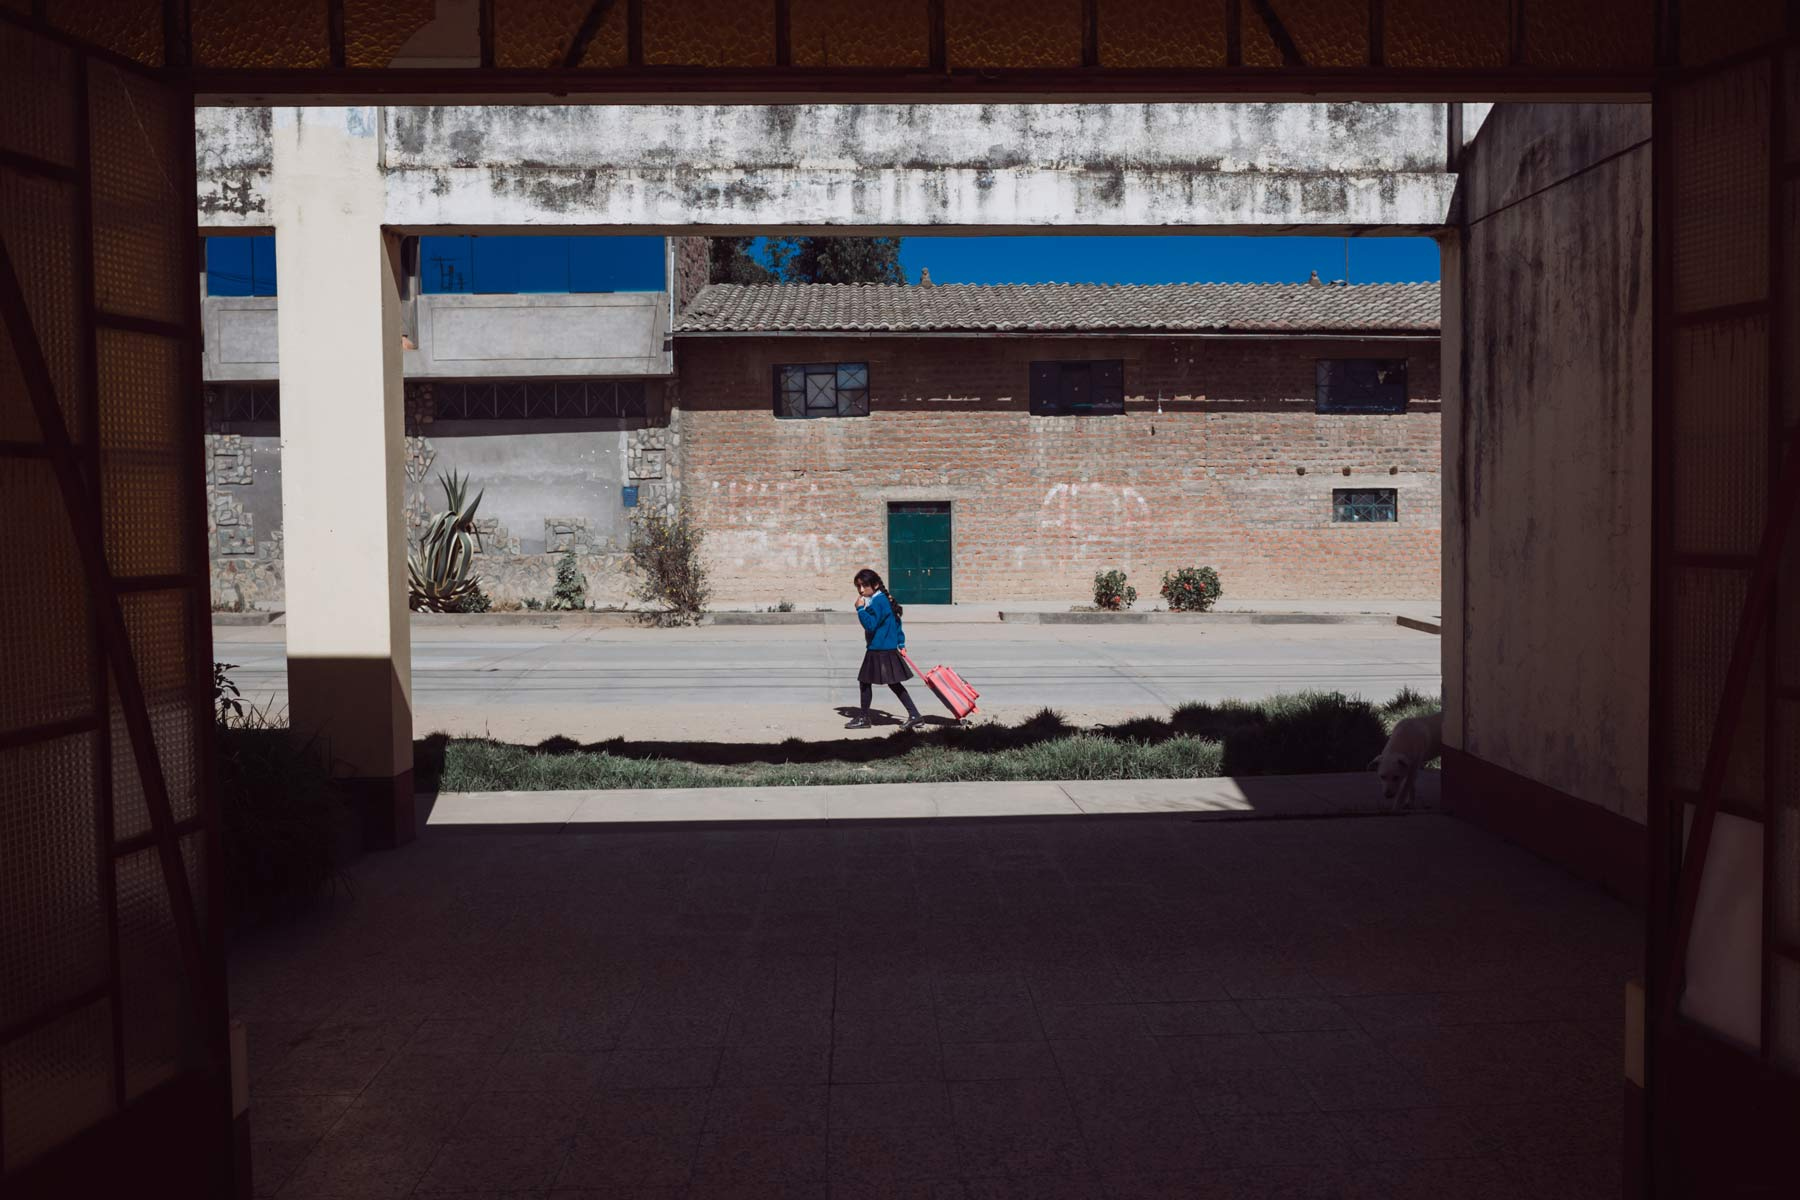 A school girl walking home crosses a large entryway in Hualhuas.